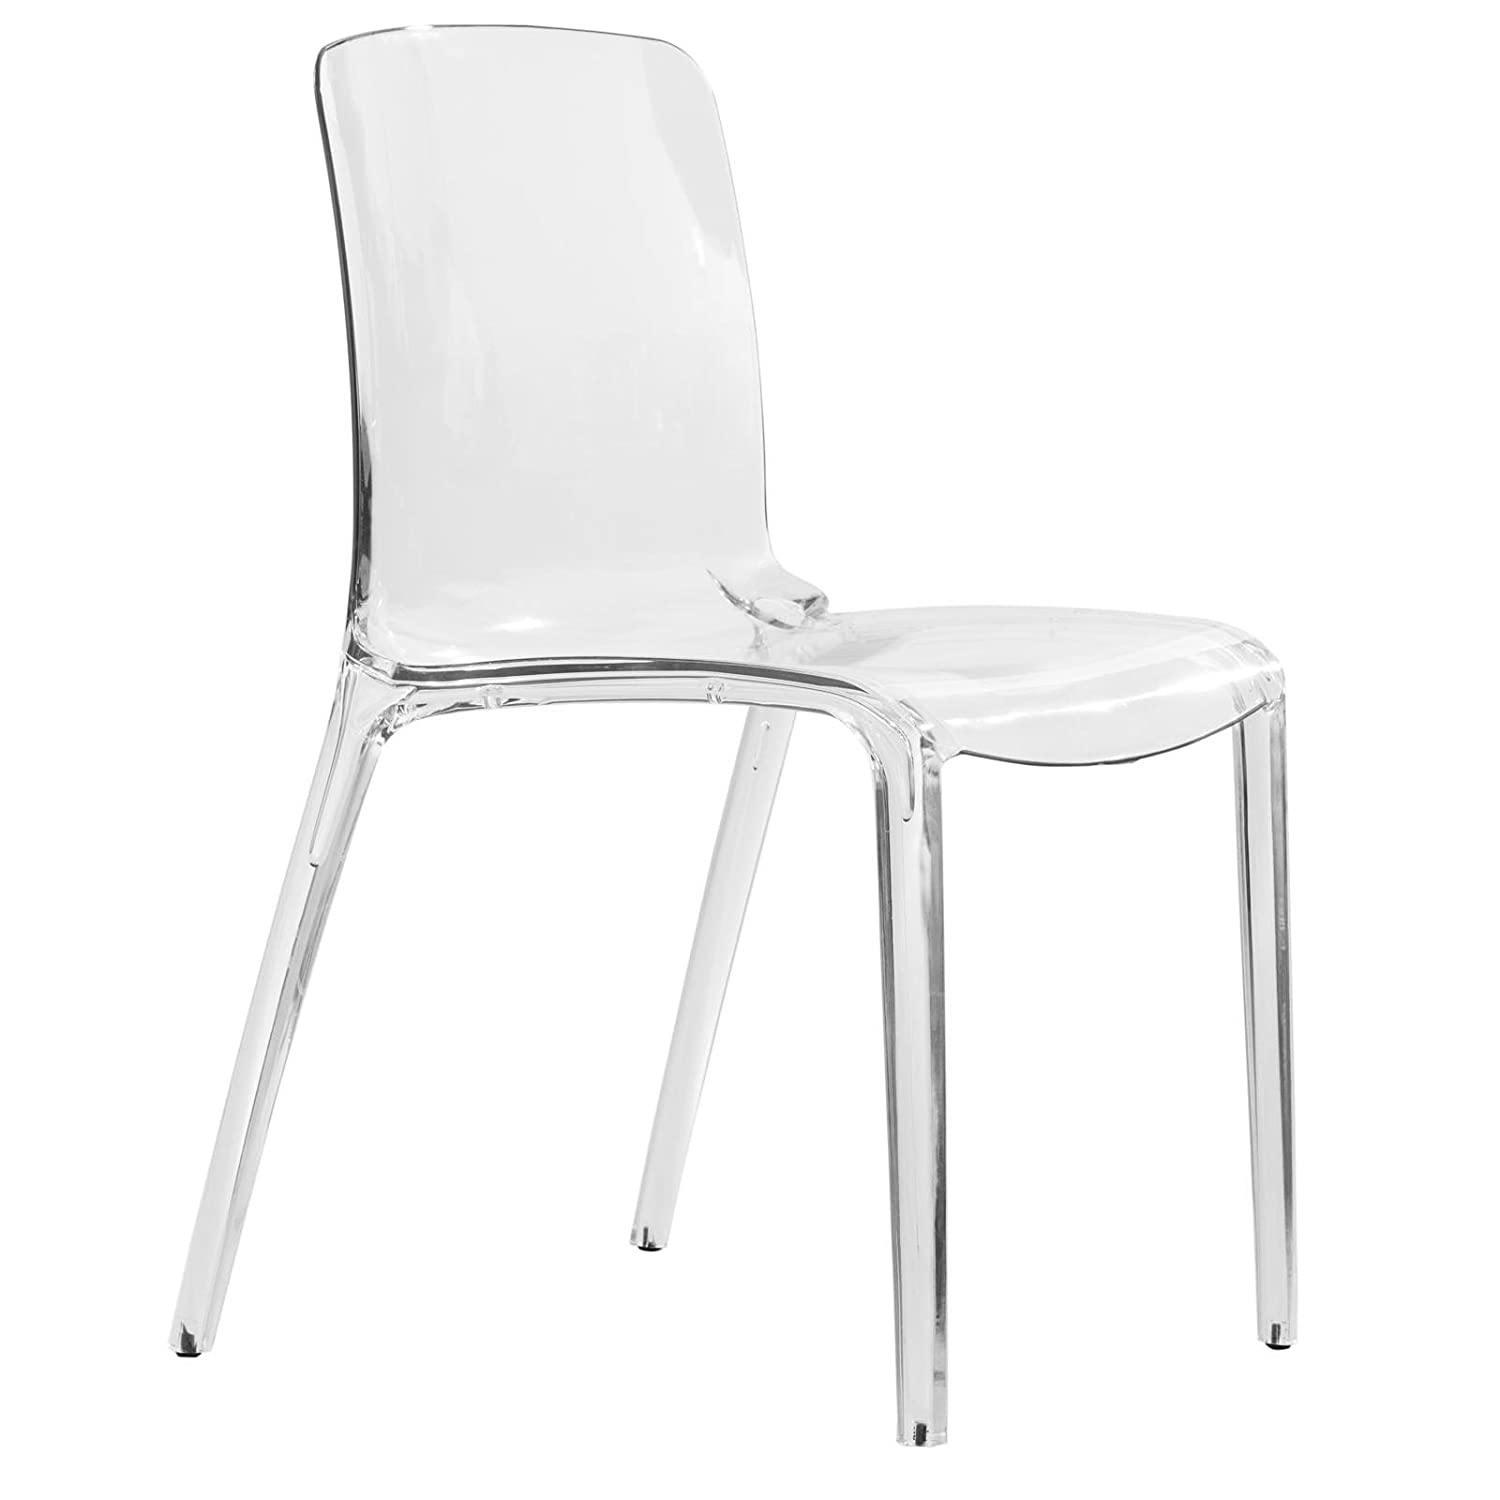 Inspirational Clear Dining Chair Luxury Inmunoanalisis Com